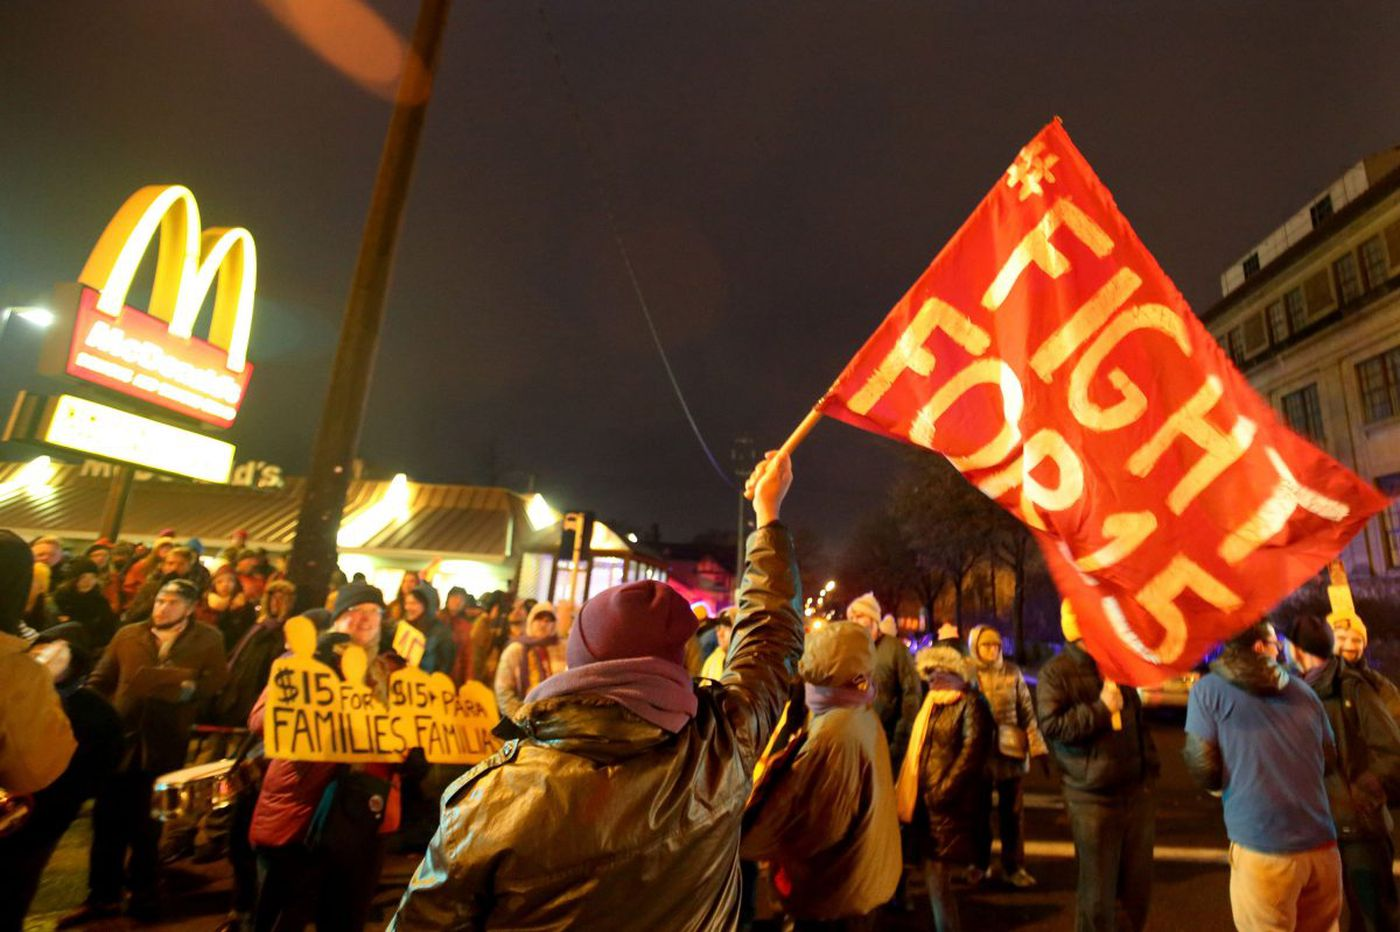 Golden anniversary of minimum wage means it's time for an increase   Opinion